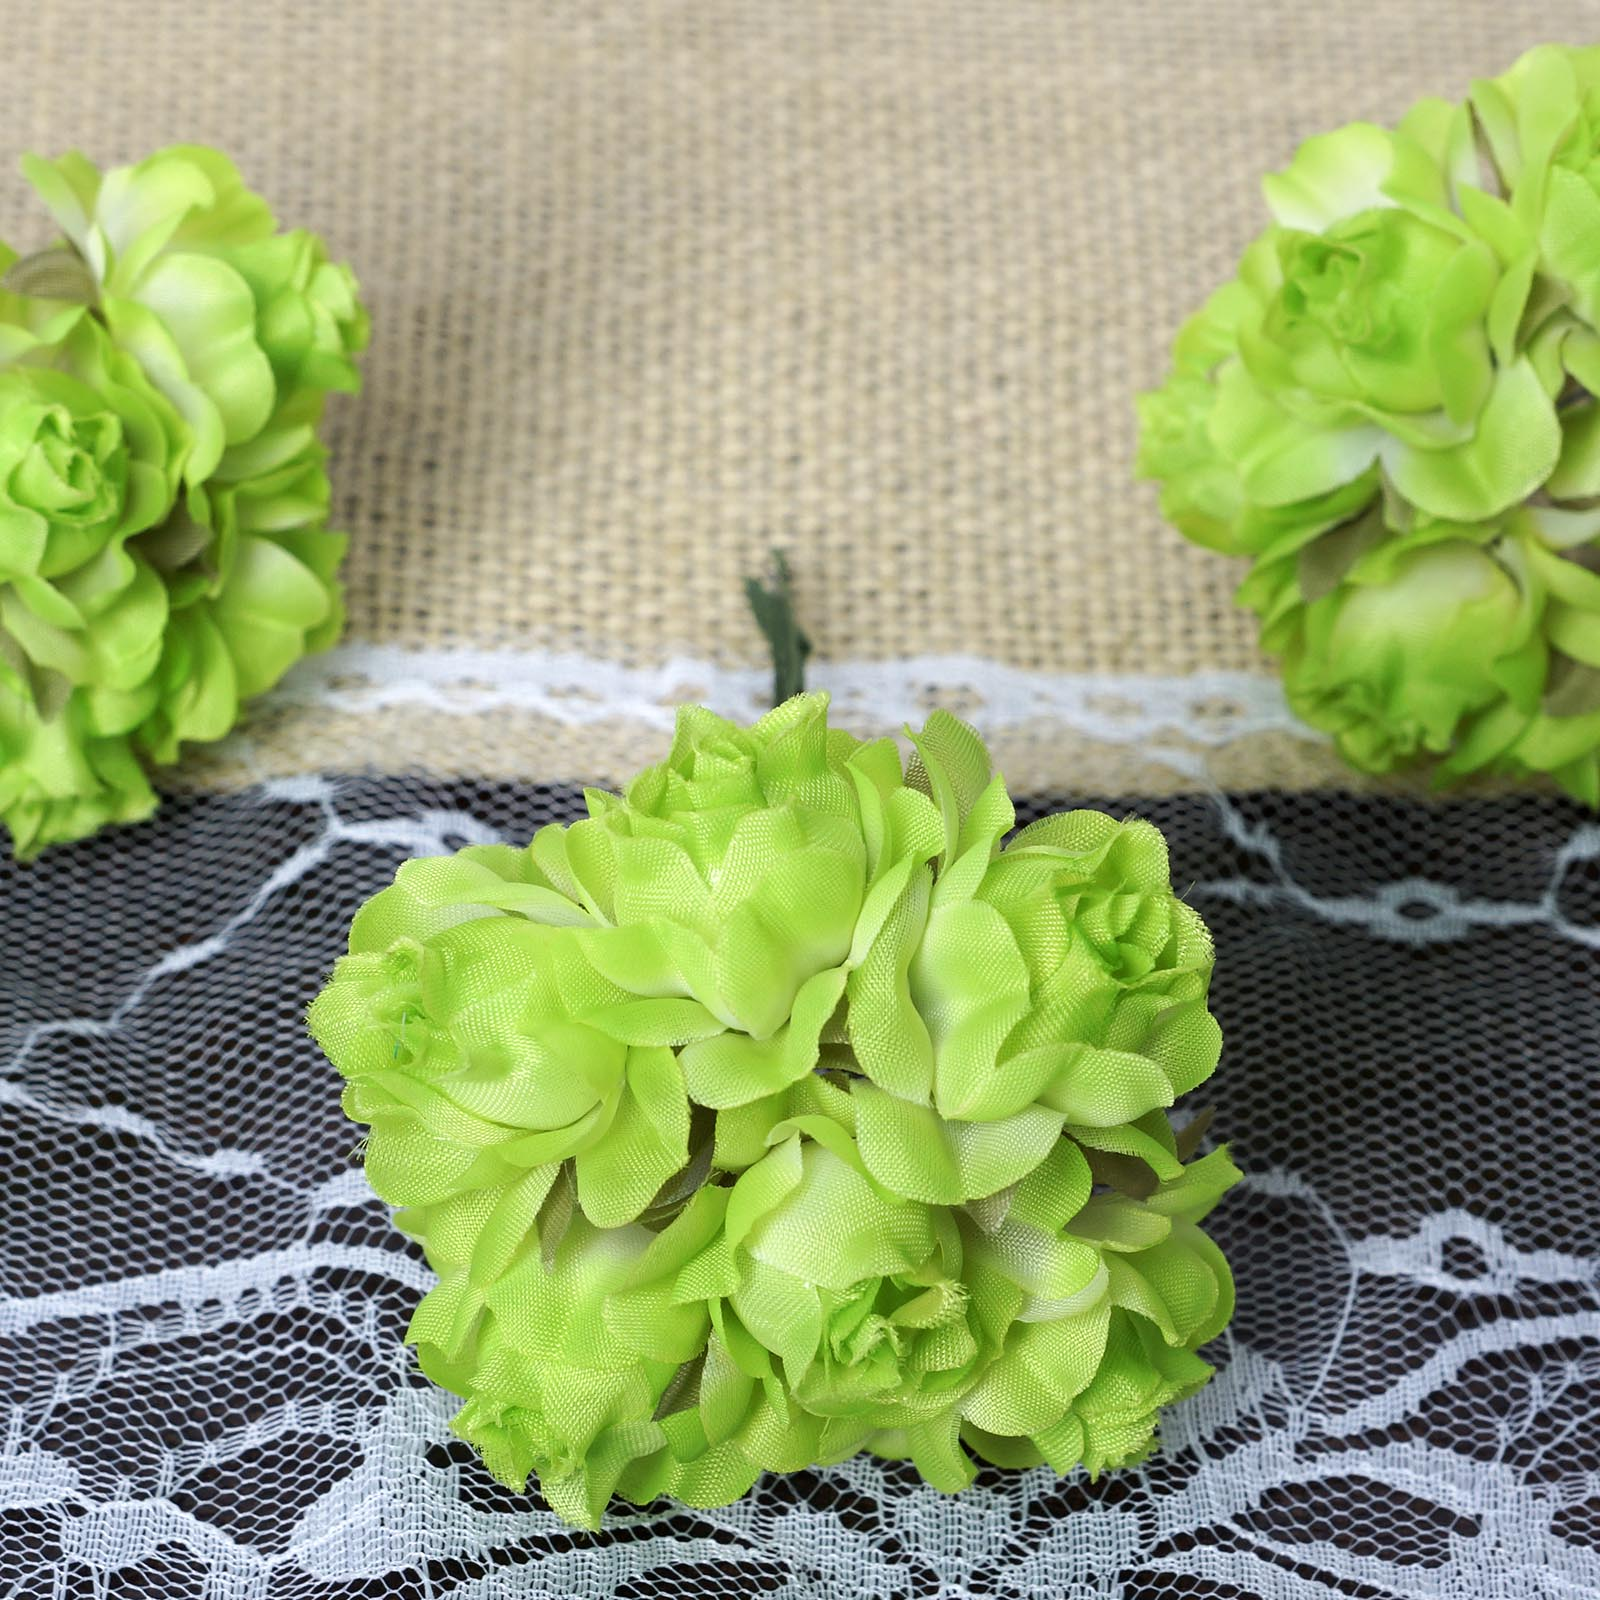 BalsaCircle 72 Semi Bloomed Craft Roses - Mini Flowers for DIY Wedding Party Favors Decorations Supplies